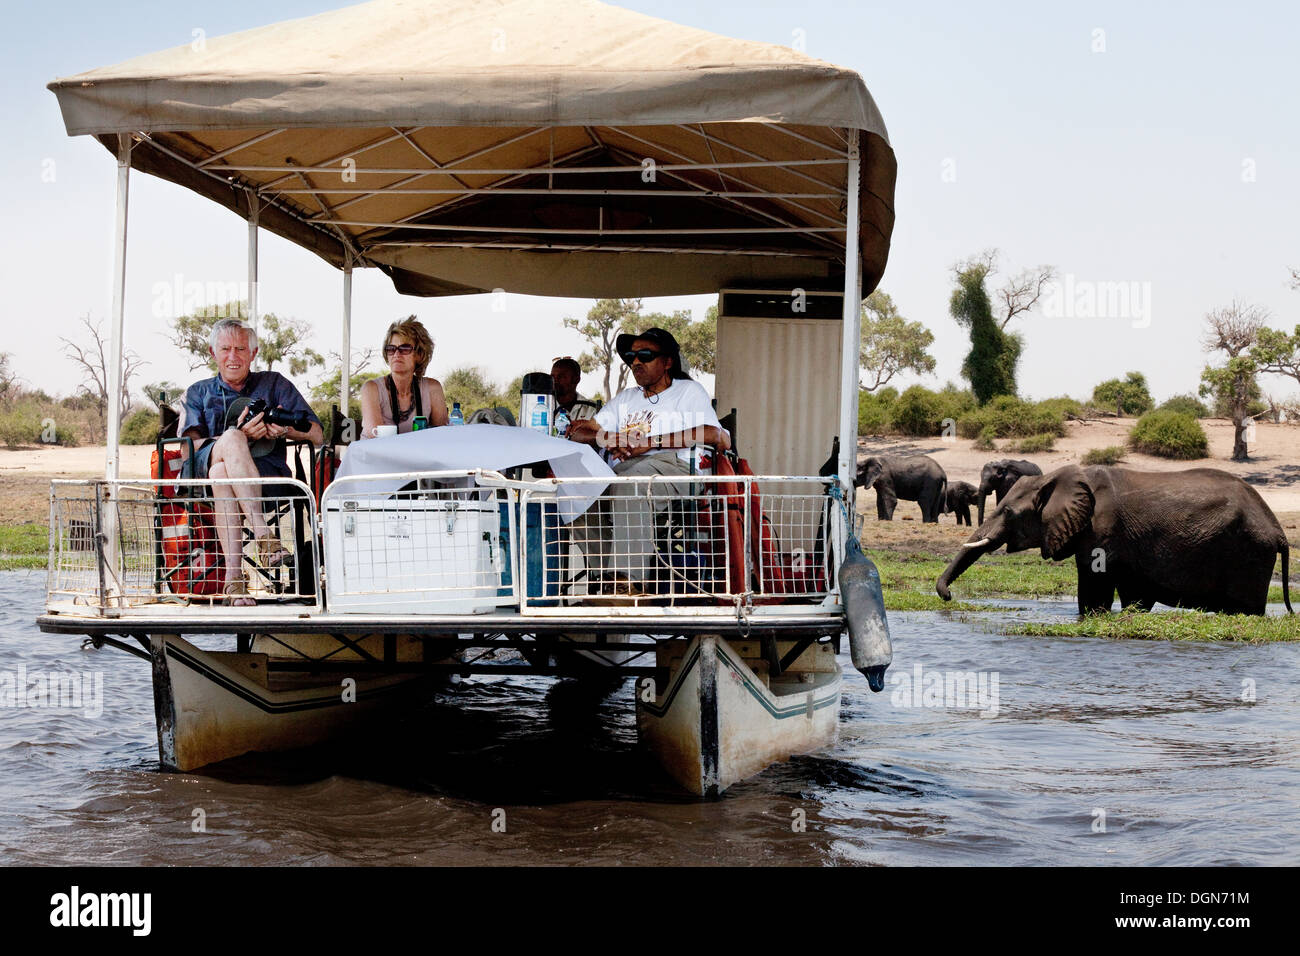 Tourists on a luxury boat safari with elephants, Chobe River, Chobe National park, Botswana Africa Stock Photo